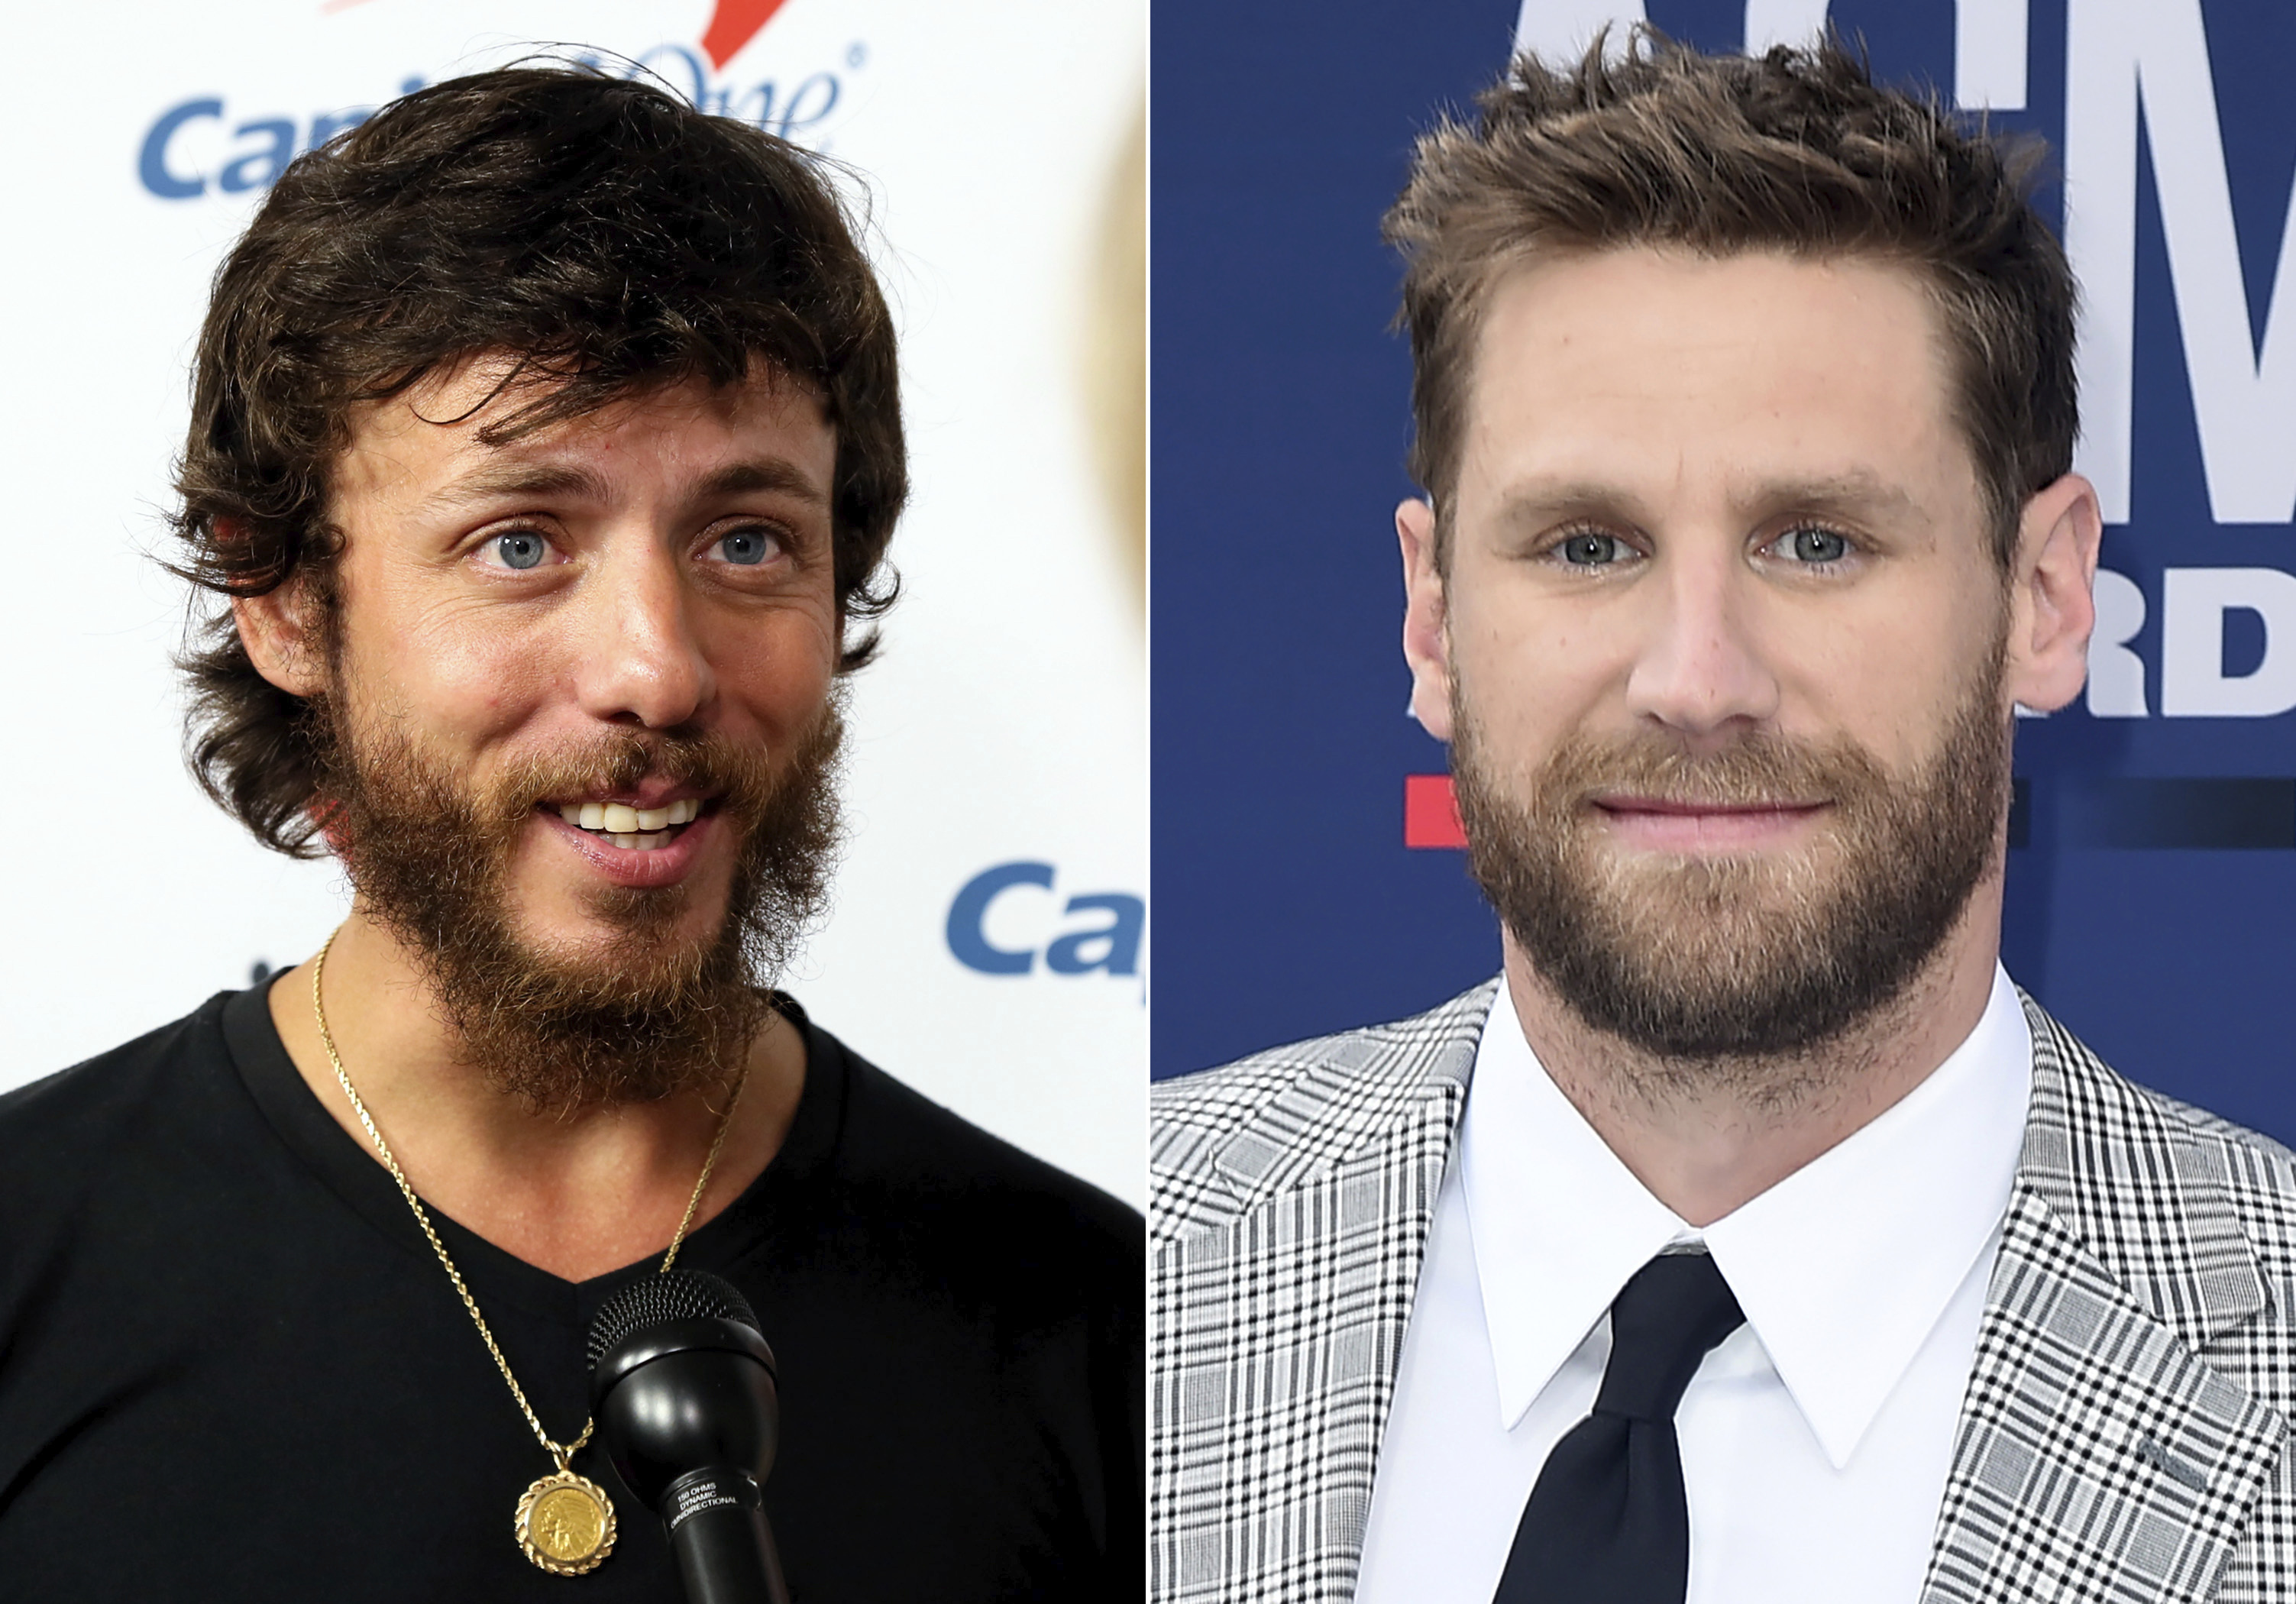 This combination photo shows Chris Janson at the iHeartCountry Festival in Austin, Texas on May 4, 2019, left, and Chase Rice at the 54th annual Academy of Country Music Awards in Las Vegas on April 7, 2019. Musicians and fans alike are criticizing country artists like Janson and Rice who performed at outdoor concerts this weekend where social media pictures showed large crowds without masks. Rice performed in front of a large crowd in Tennessee and Janson performed at an outdoor festival in Idaho.